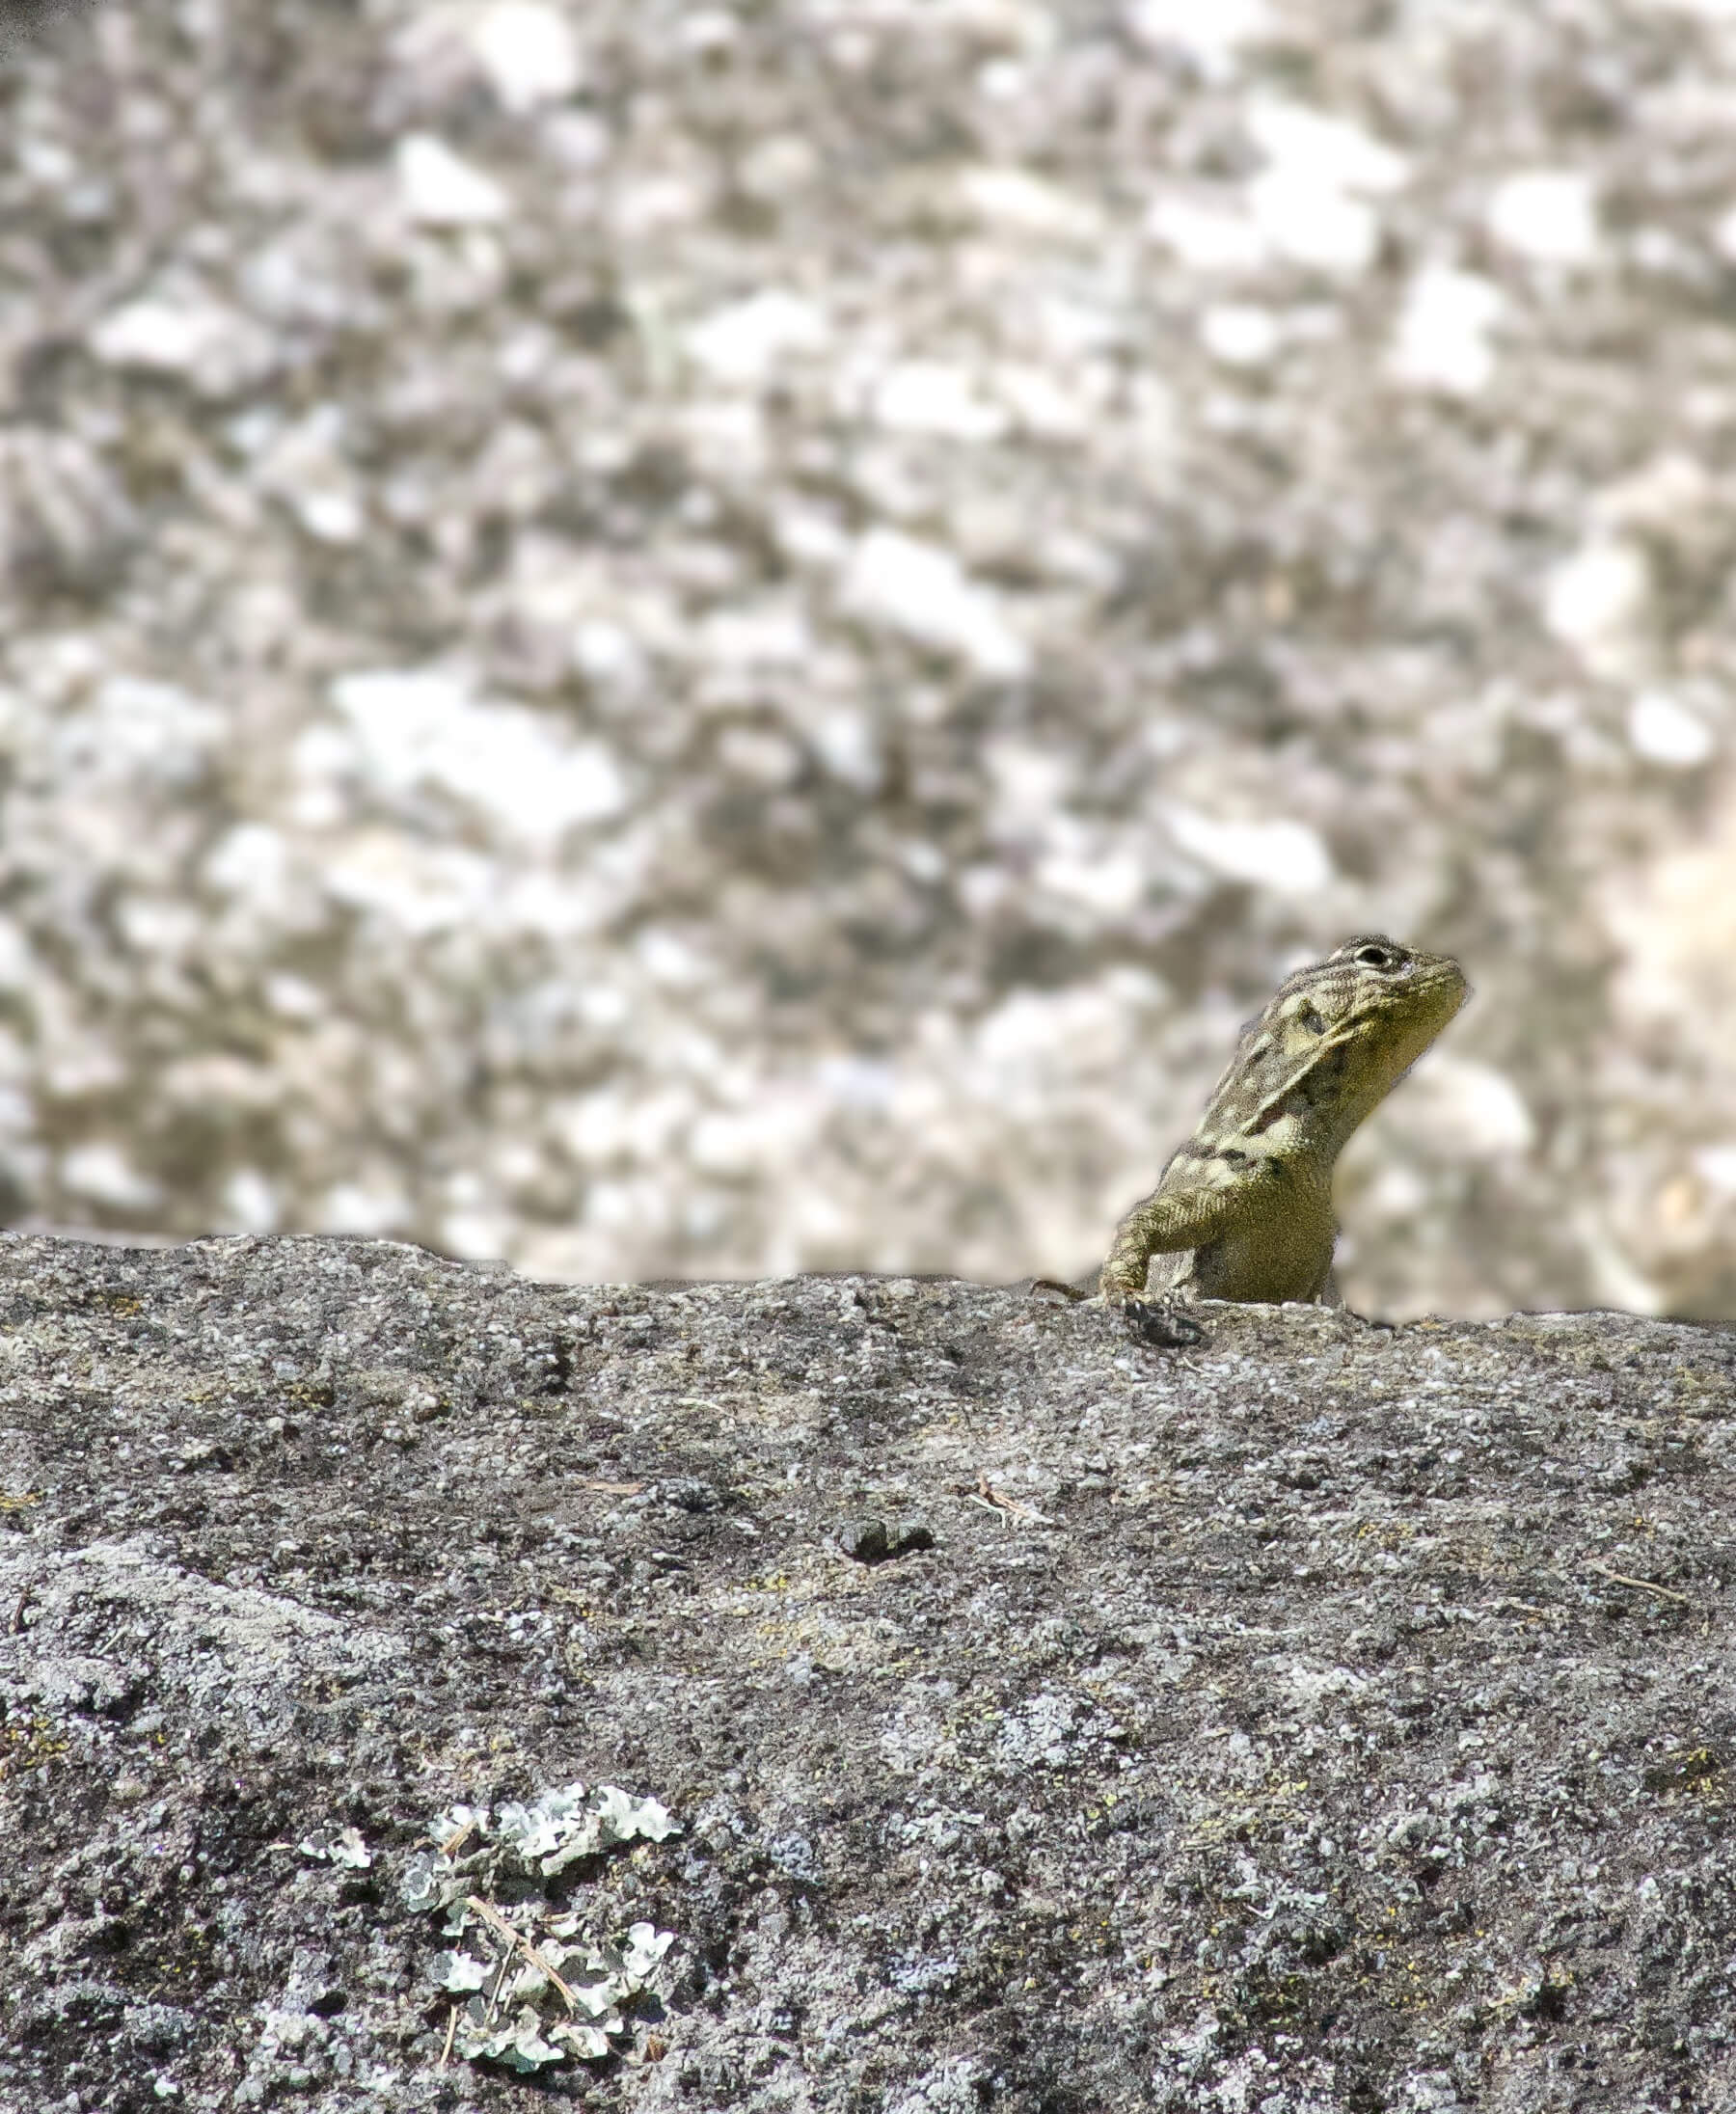 A small brownish lizard peering over a rock, almost camouflaging into the background